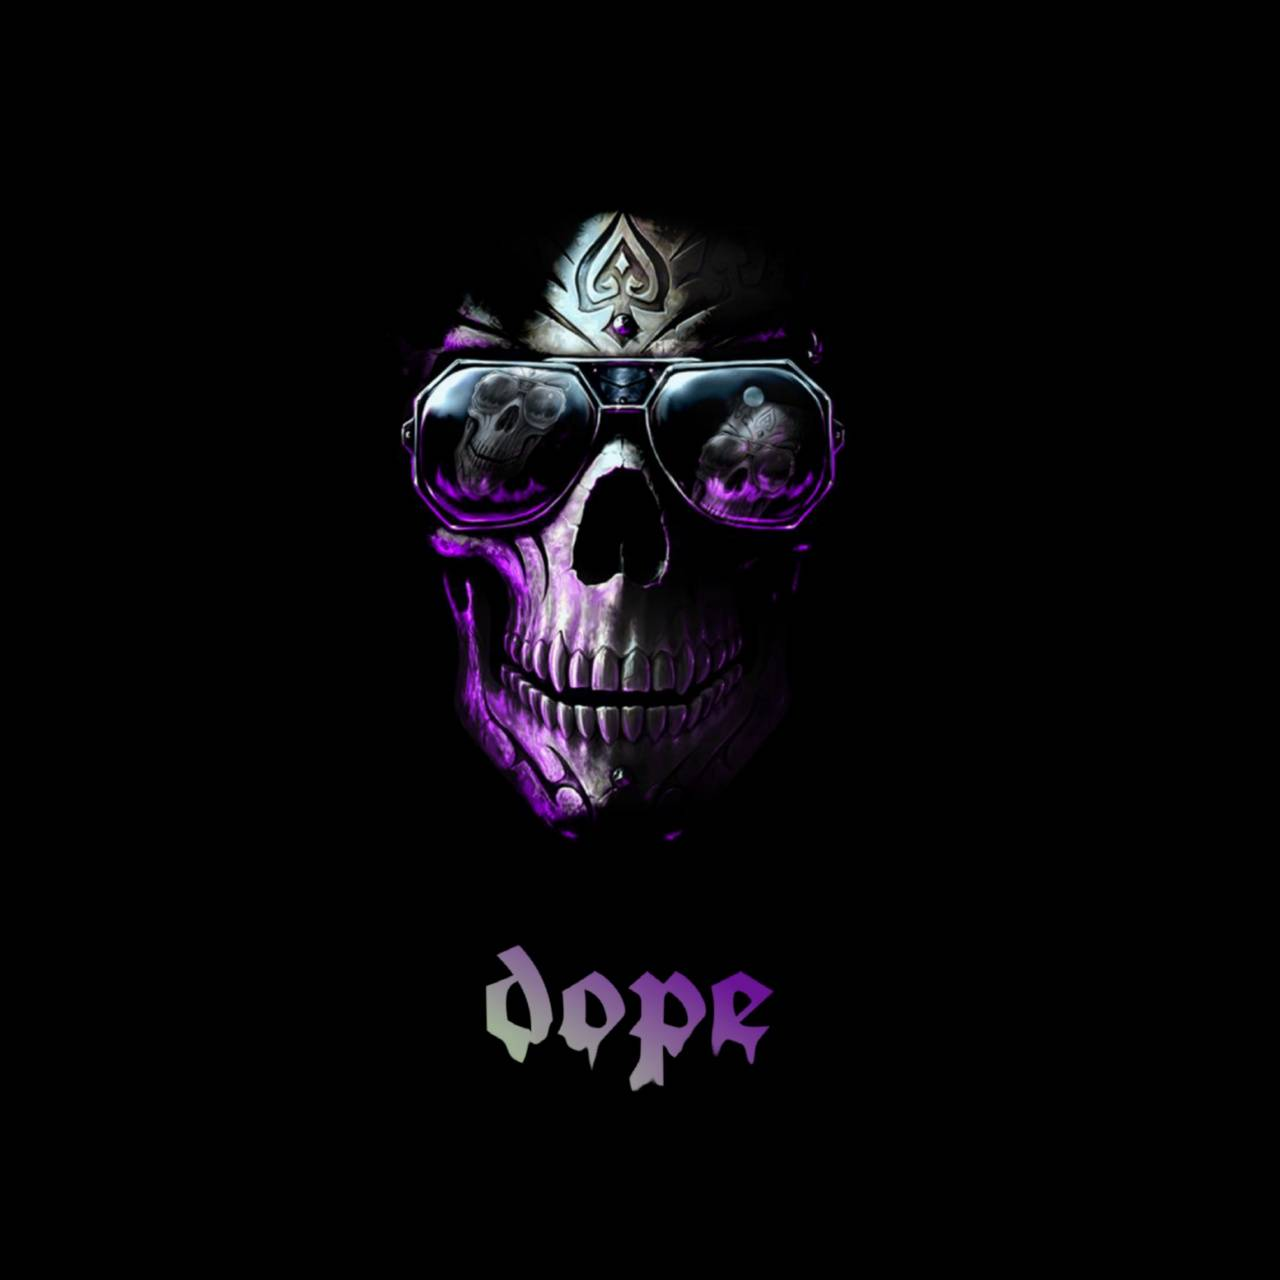 Gangster Skull Wallpaper By Doctordesign 6a Free On Zedge